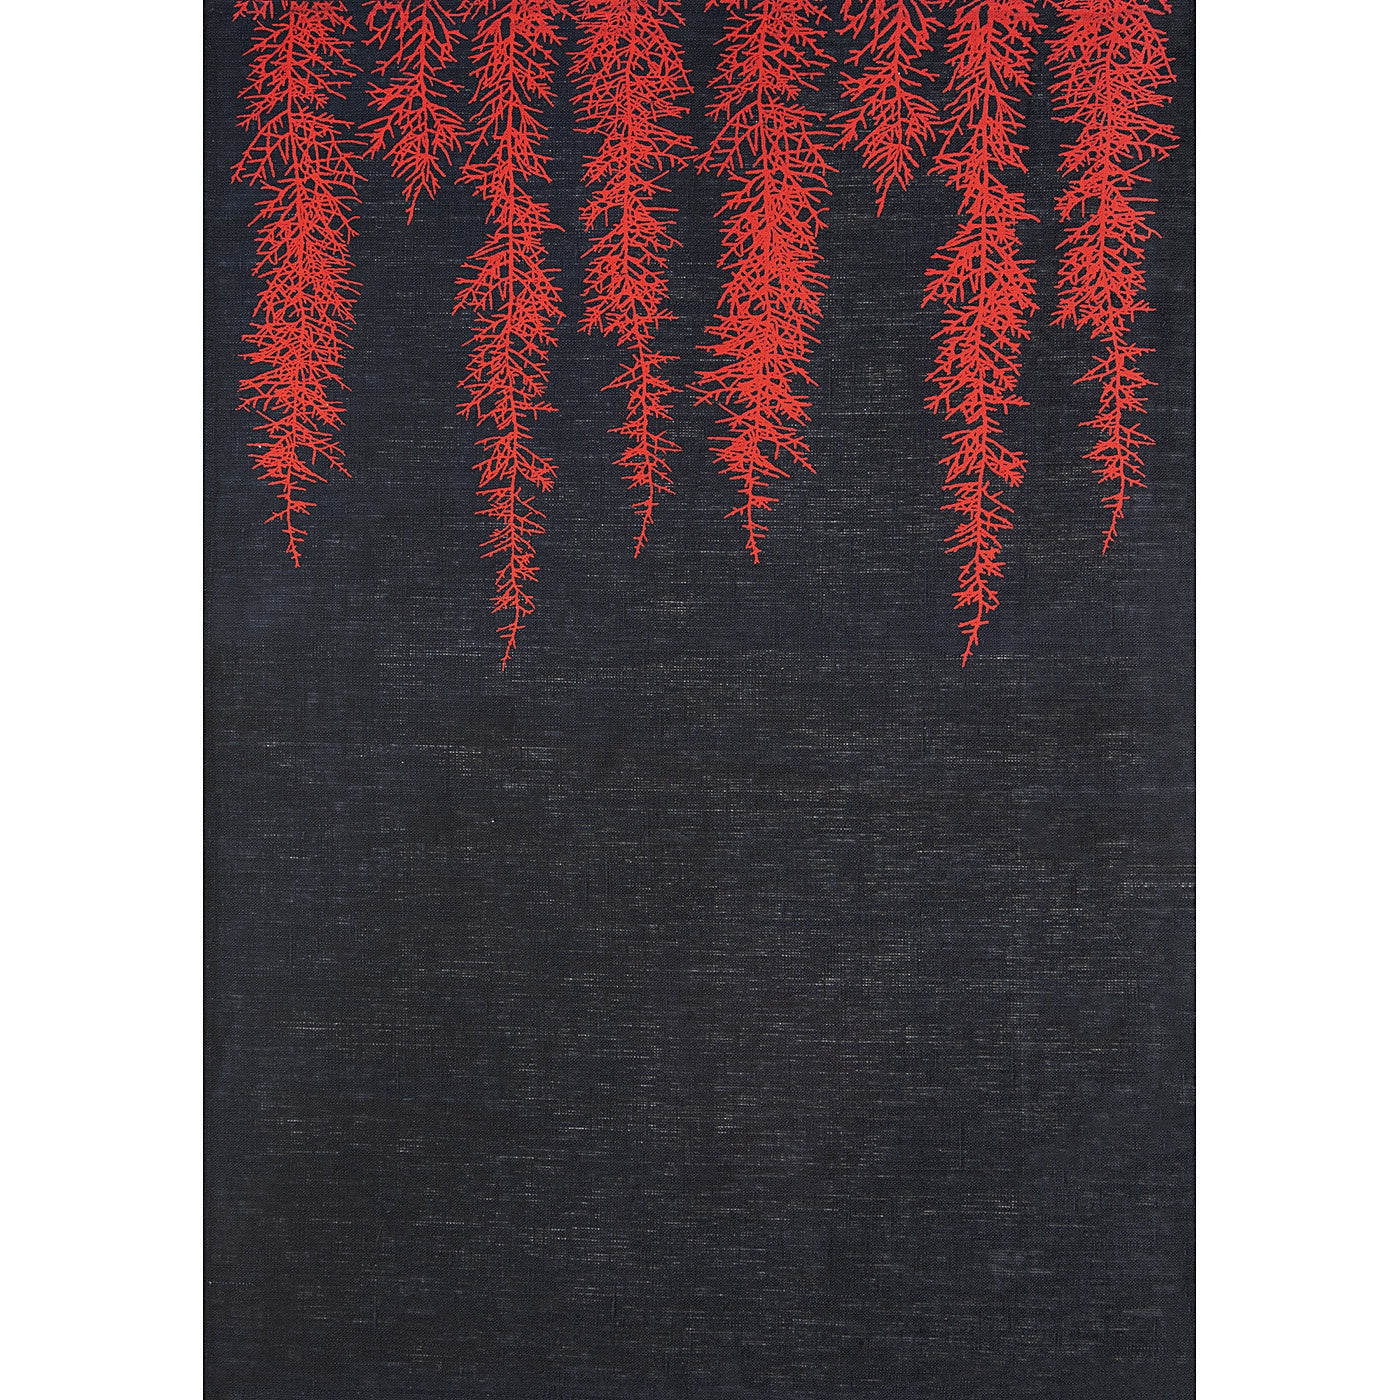 Stalley Textile Co. - Tea Towel - Huon Pine - Red on Black